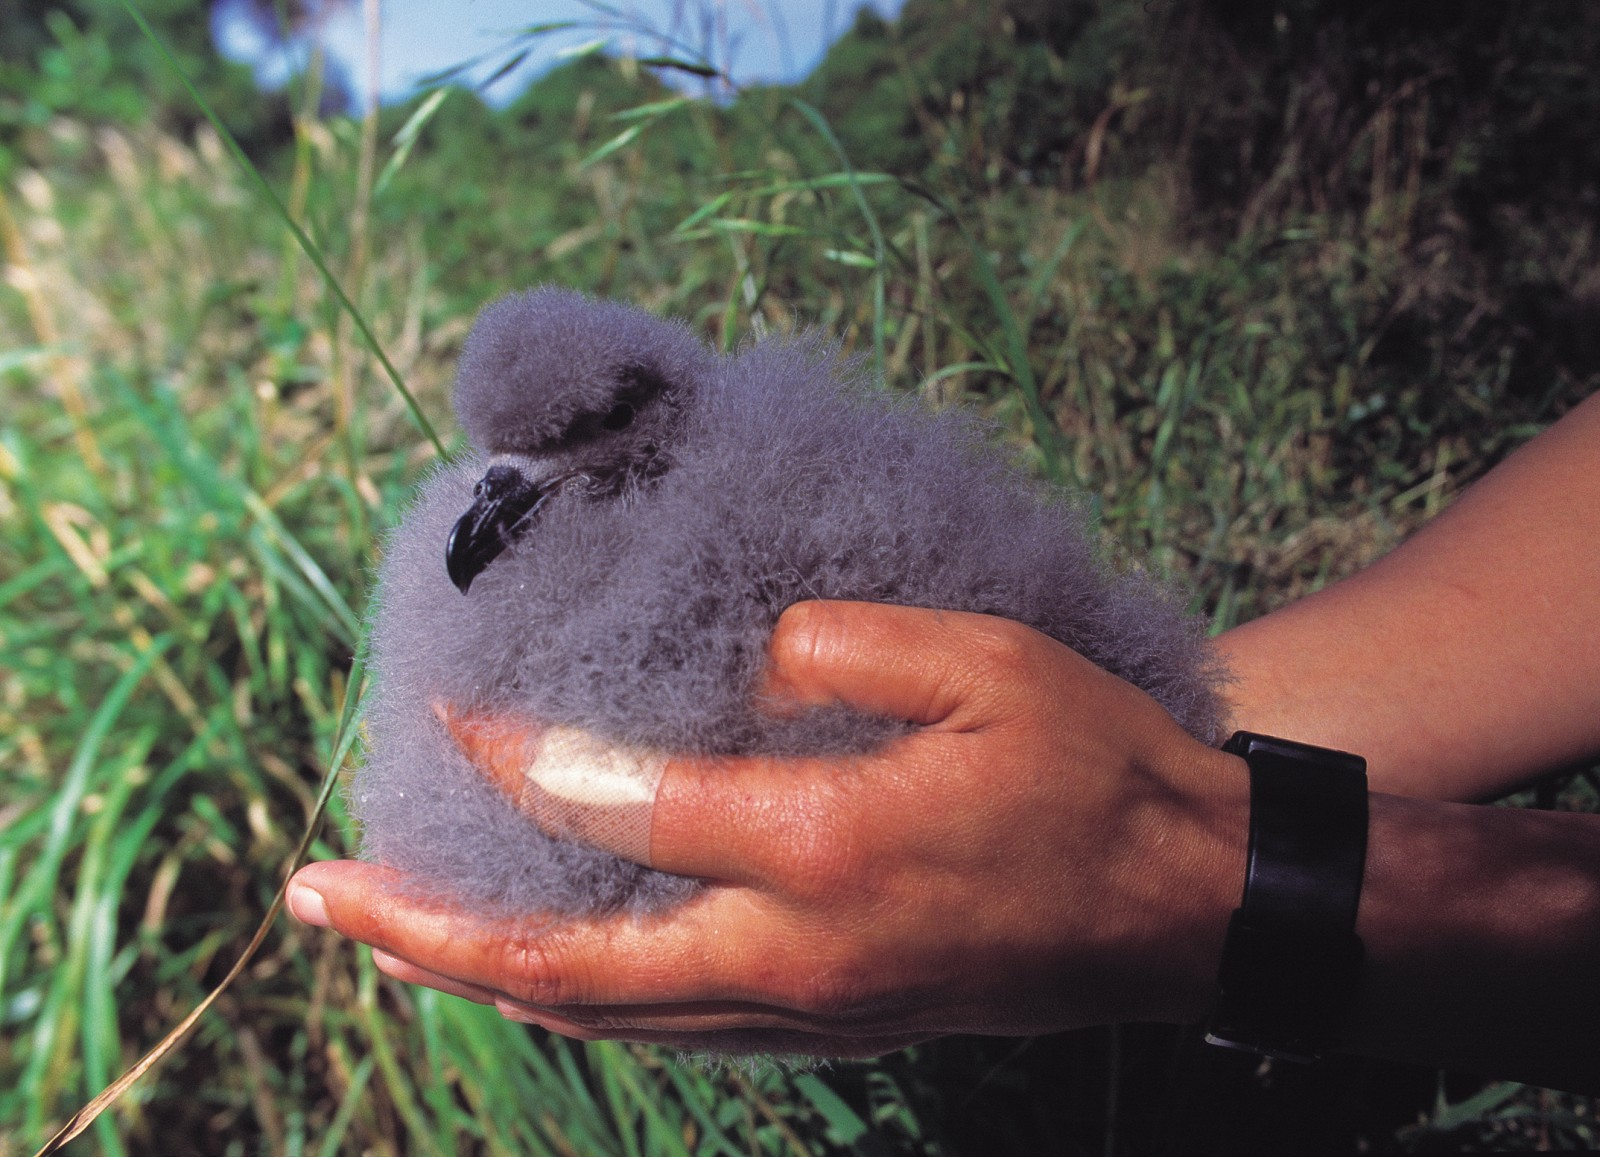 This young Chatham petrel-heavier than its parents at this stage of its life-is close to fledging. In the past few years, intense management of the species, including the provision of artificial burrows, has resulted in 70 to 90 per cent of chicks surviving. Previously, as few as 20 per cent survived.